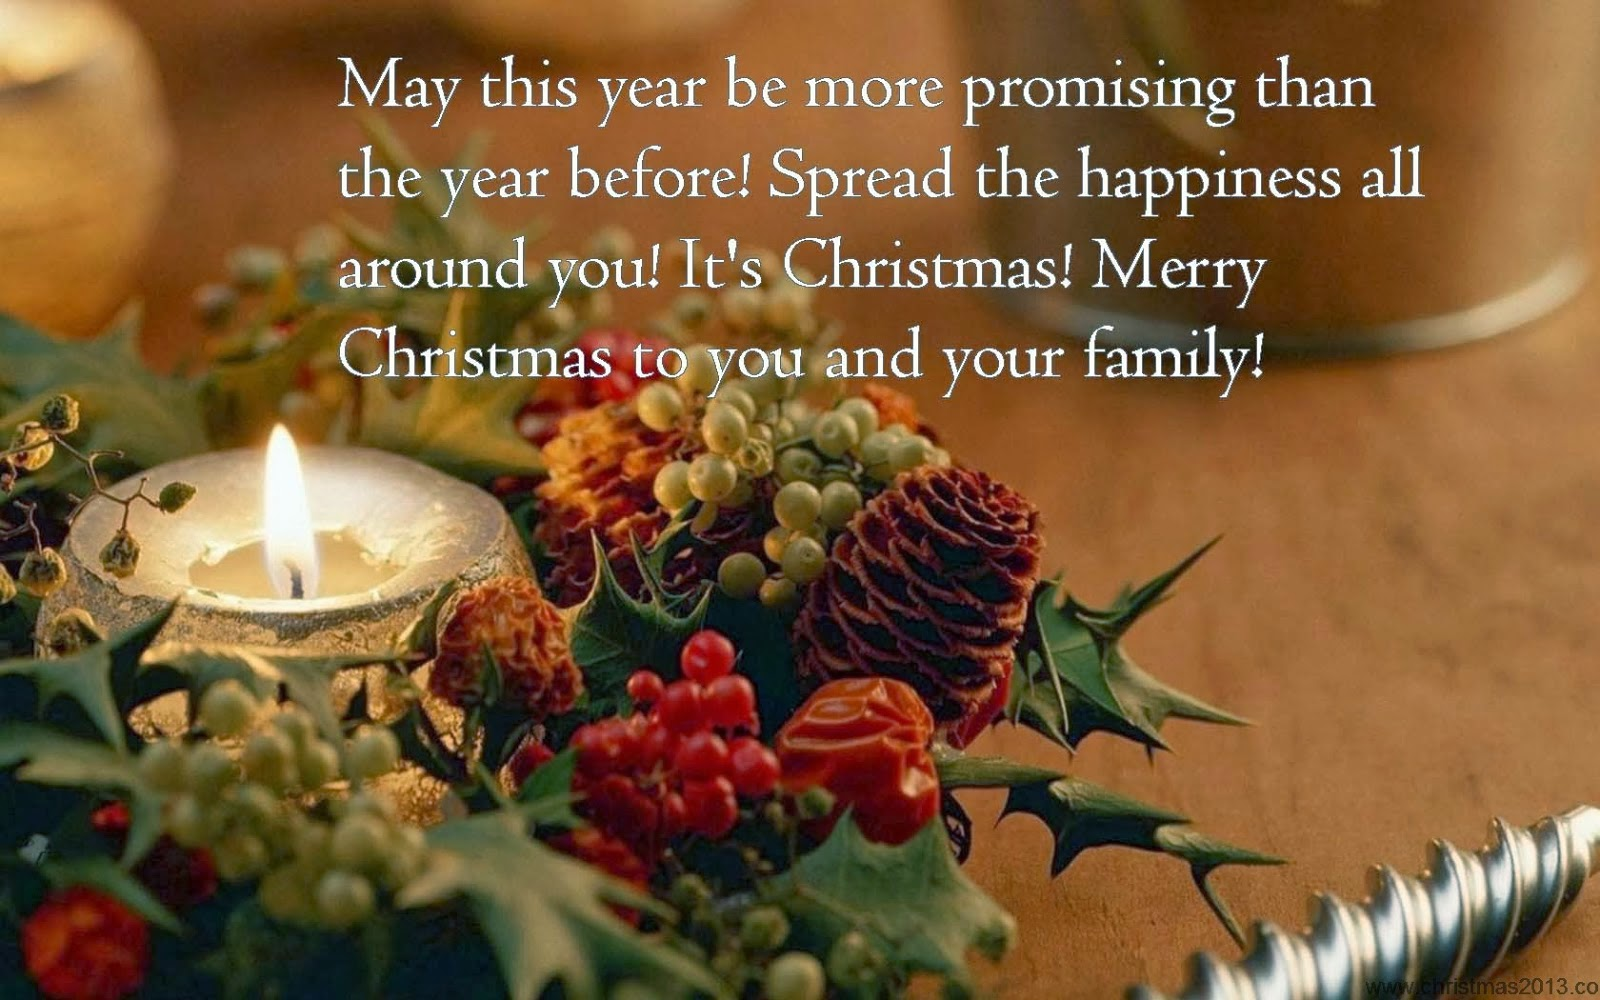 merry christmas eve quotes wishes cards photos - Merry Christmas Eve Quotes